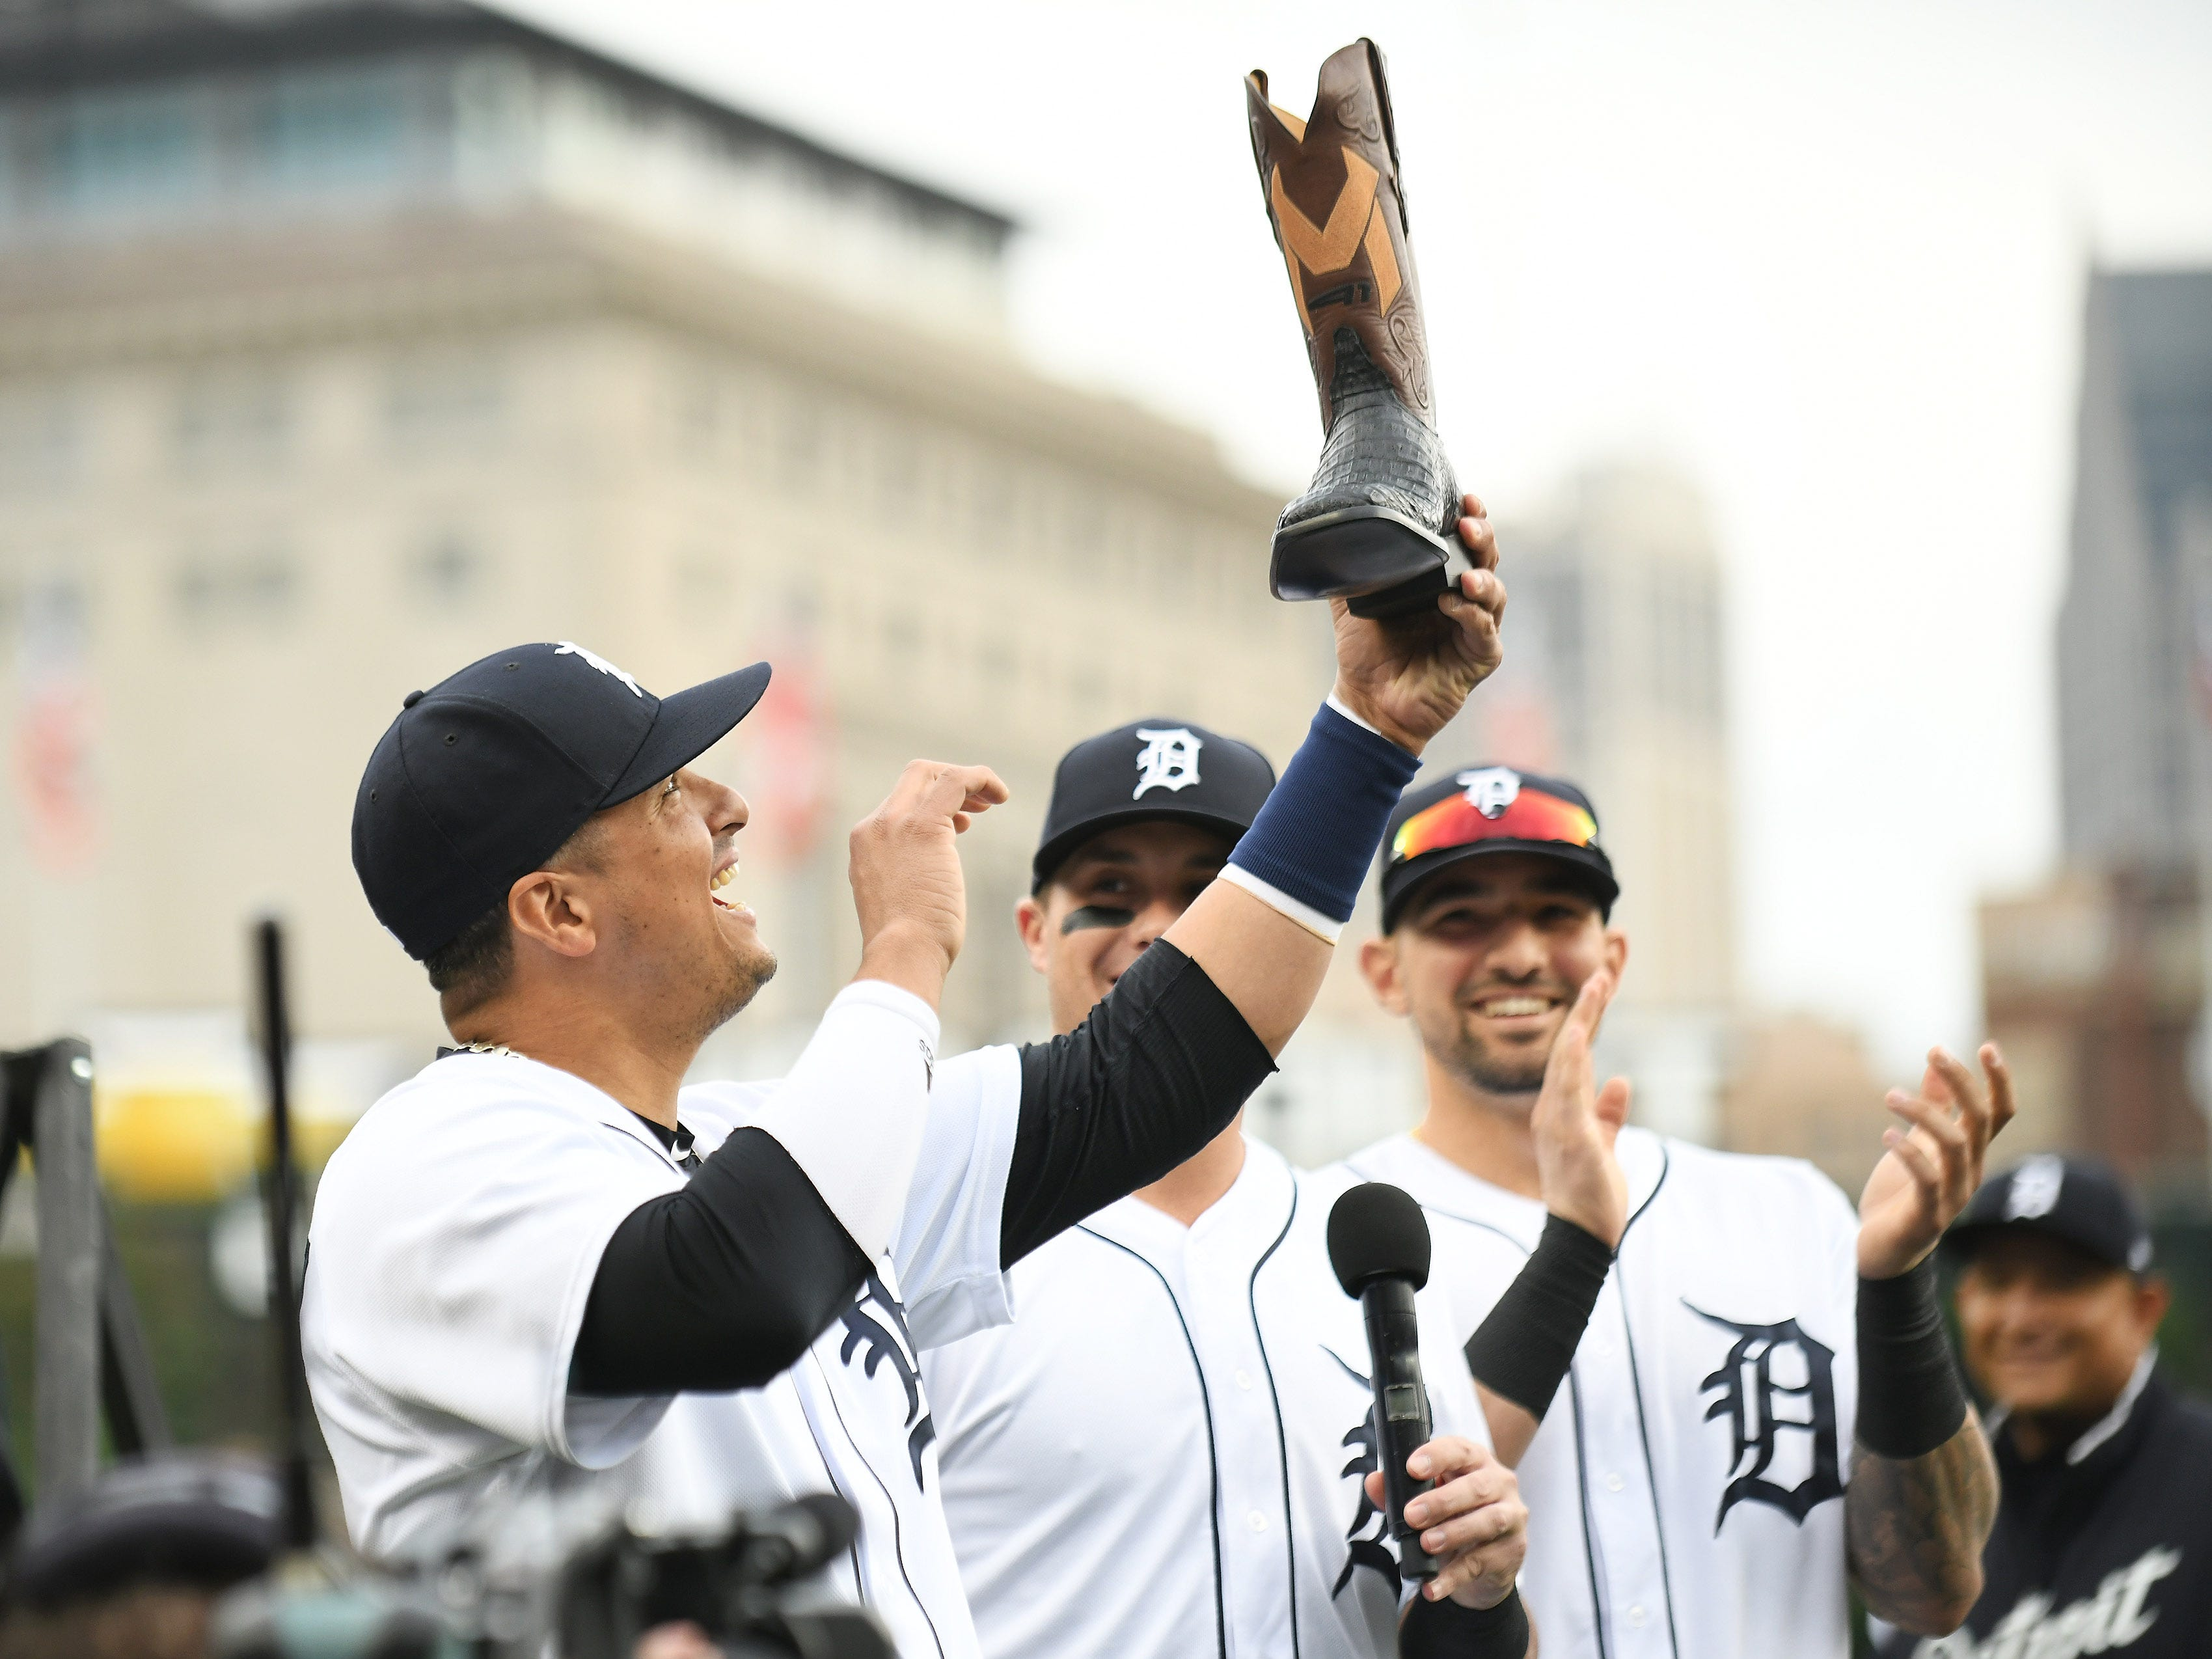 Tigers' Victor Martinez holds up one of the cowboy boots that the team got for him during a special tribute ceremony for Martinez before the game at Comerica Park in Detroit on Sept. 22, 2018.